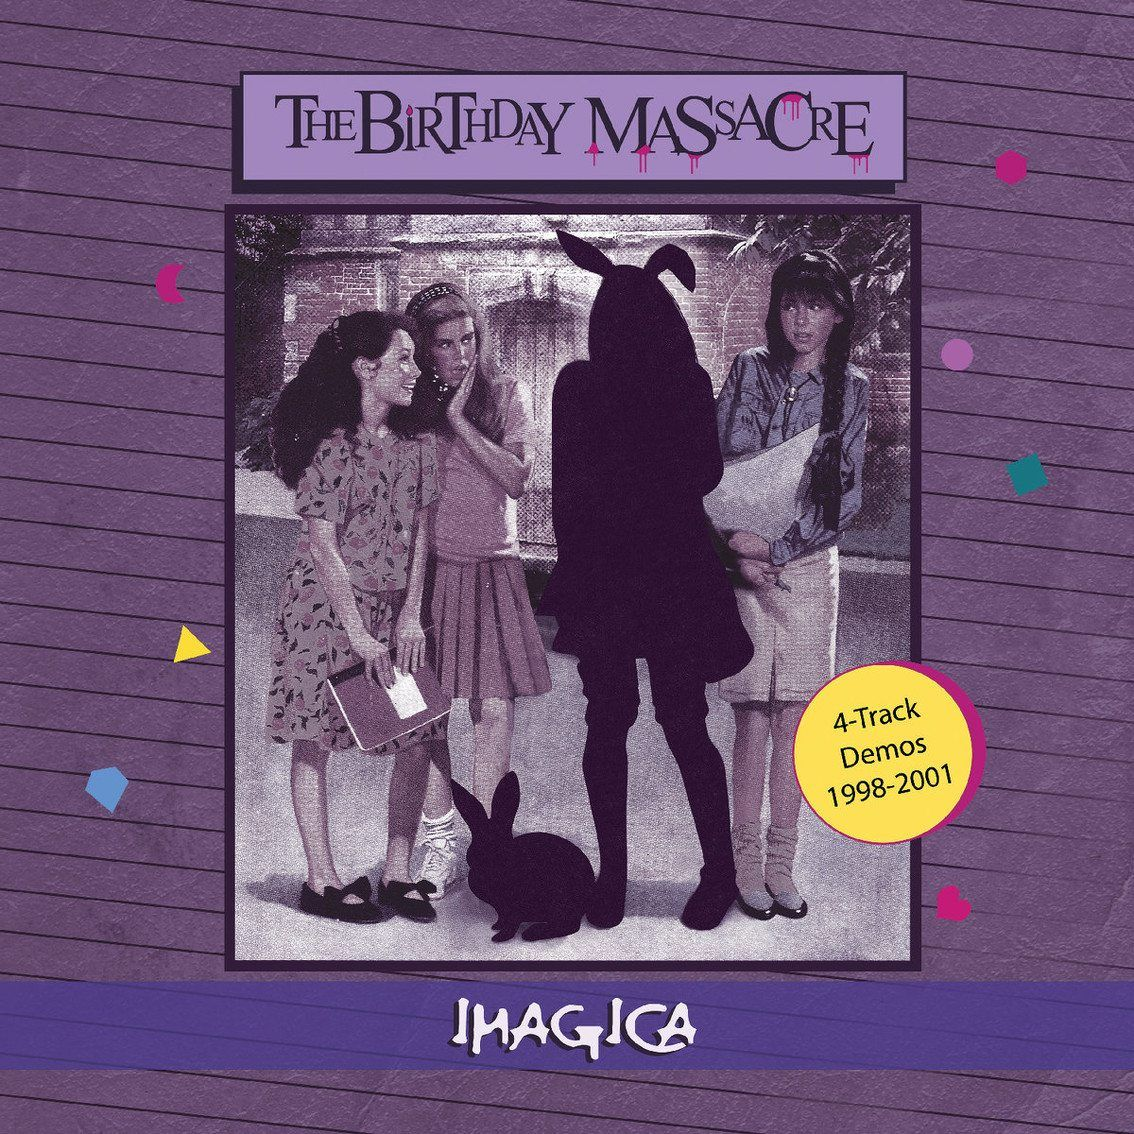 The Birthday Massacre reissue 11 4-track demos (1998-2001) on'Imagica' vinyl and CD